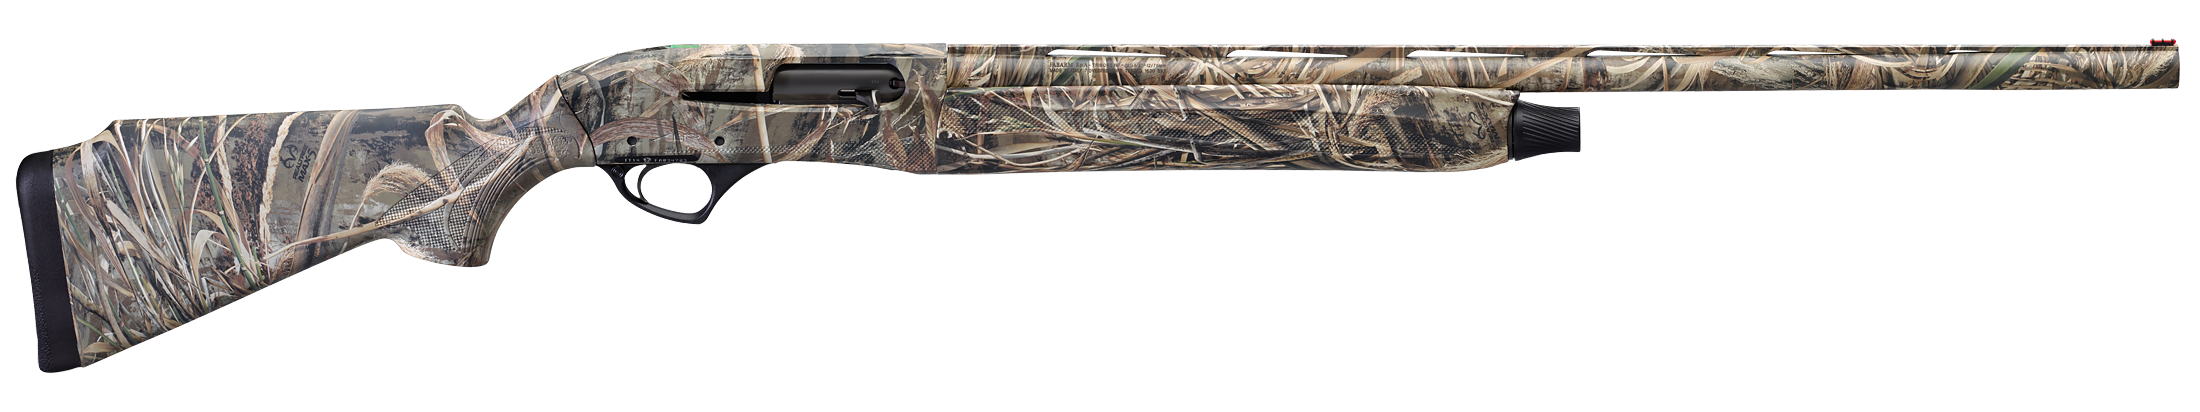 Syren_XLR5_Waterfowler_profile